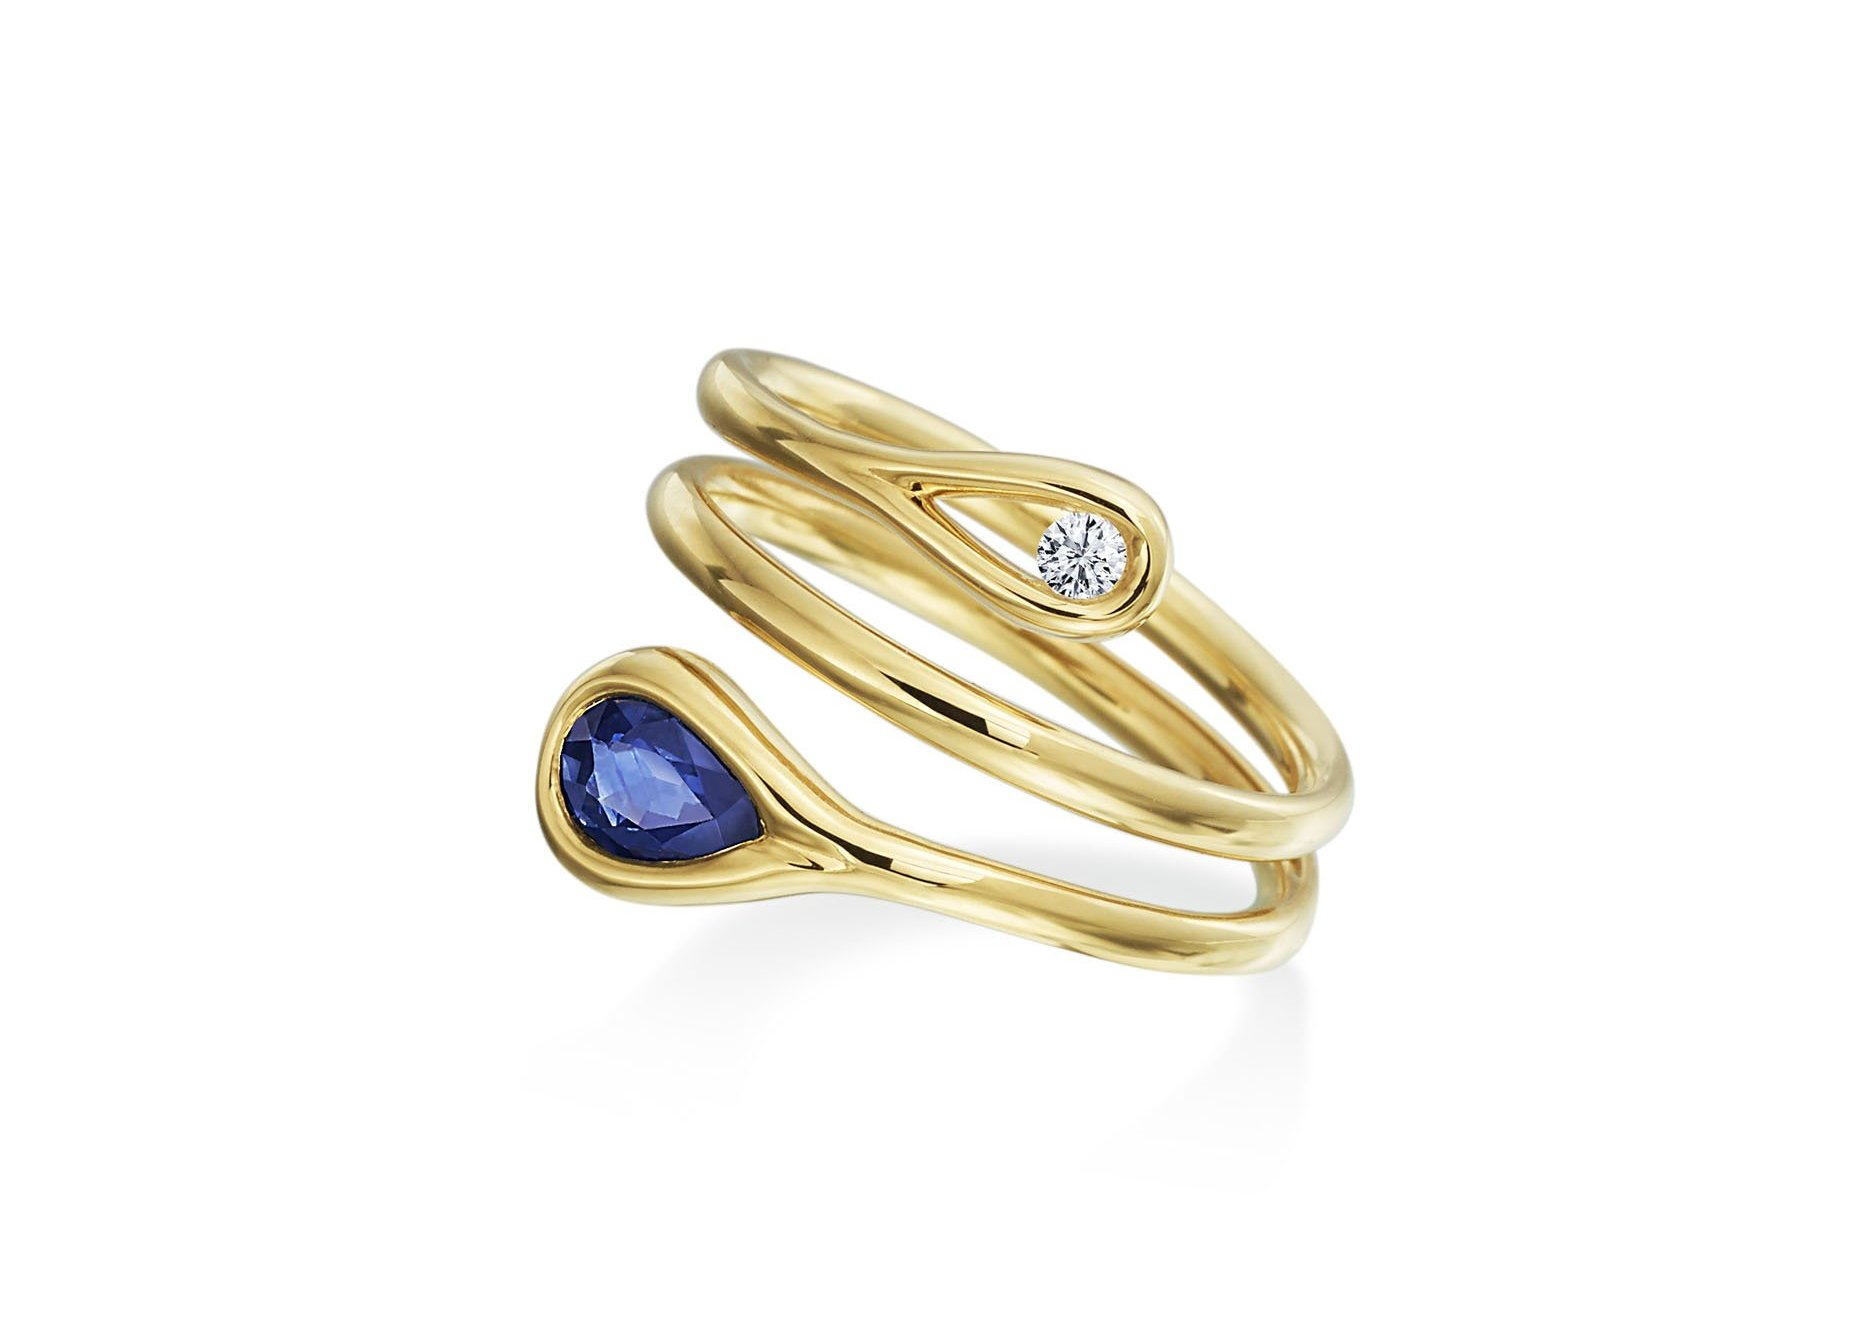 Maria Canale Drop Collection sapphire and round brilliant cut diamond ring in 18k yellow gold.